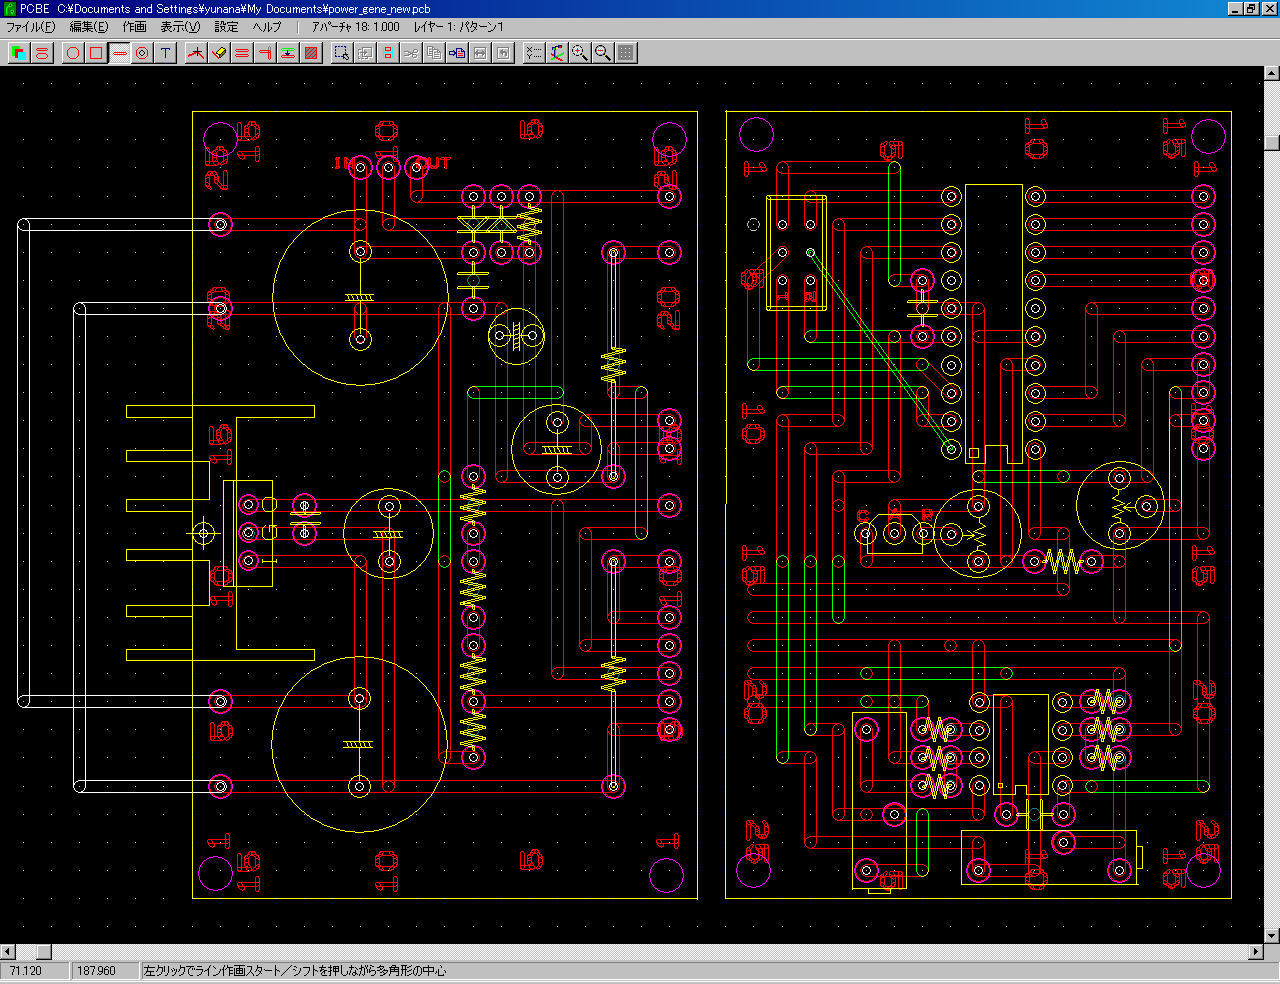 power_gene_pcb.PNG